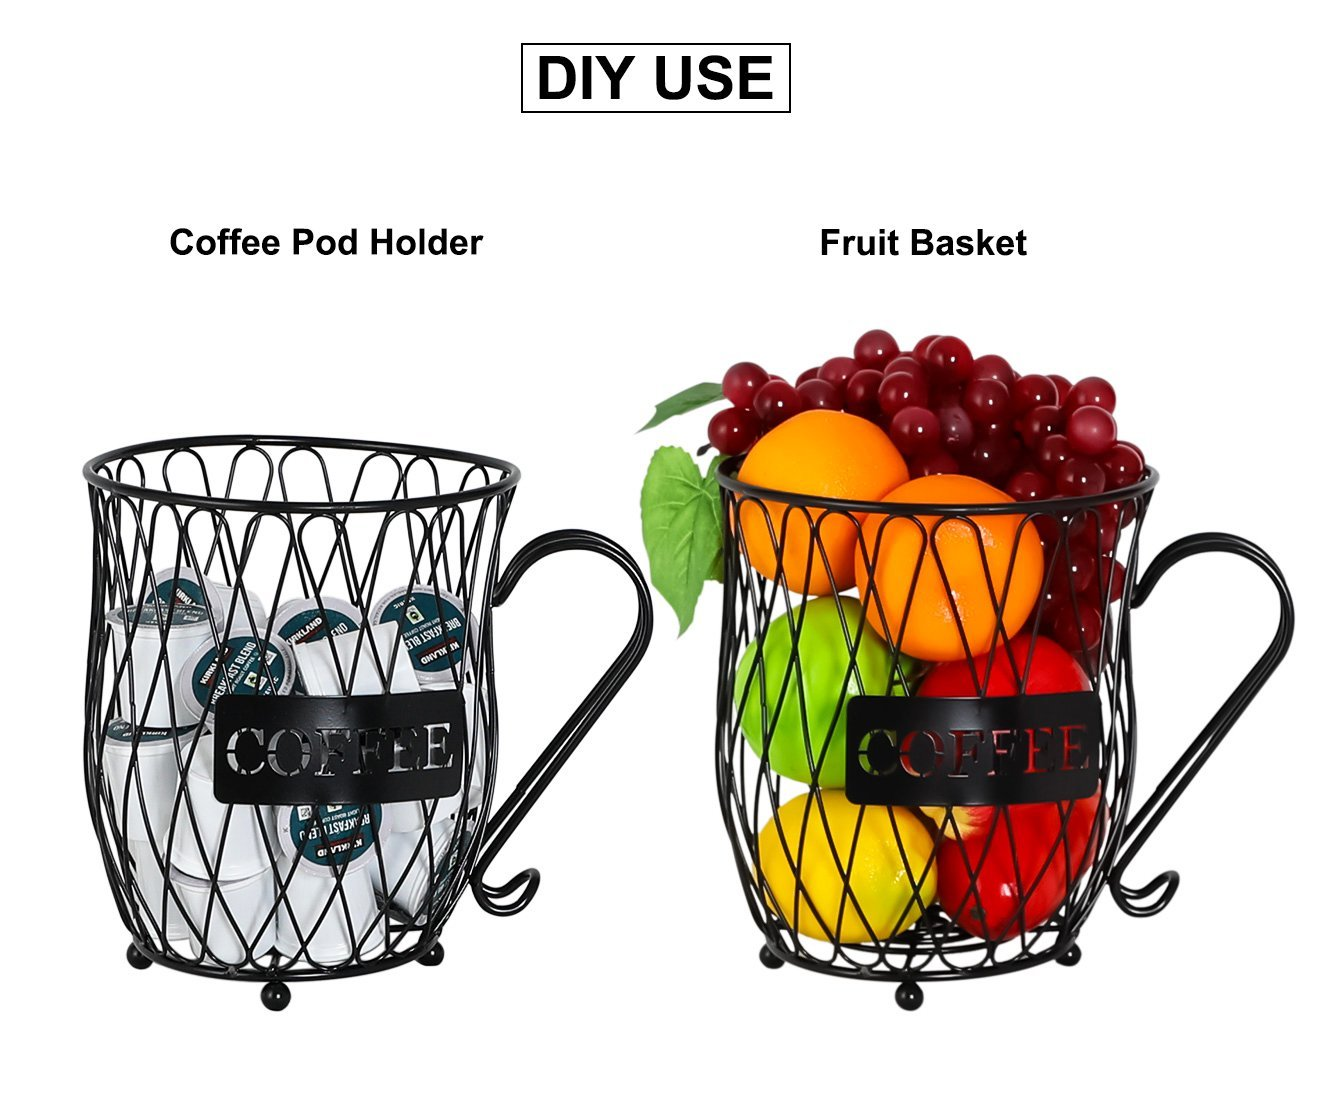 PAG Coffee Pod Holder with Storage and Metal Wire Mug Fruit Basket, Black by PAG (Image #3)